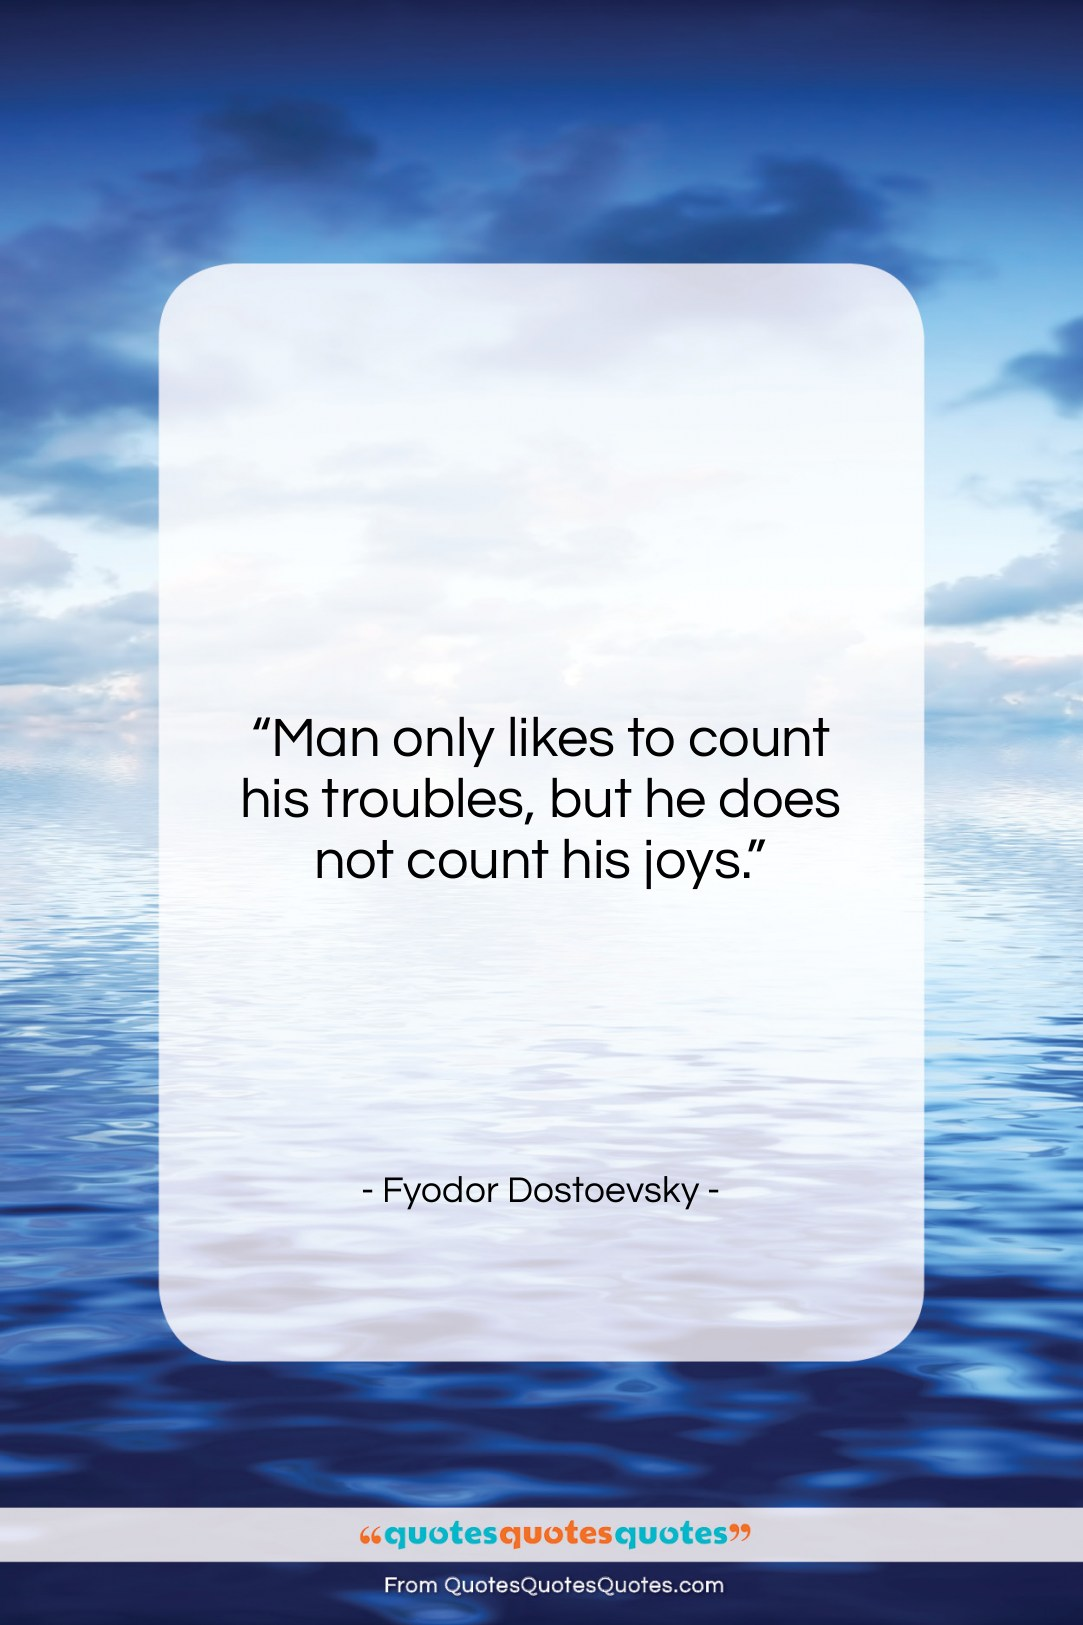 """Fyodor Dostoevsky quote: """"Man only likes to count his troubles,…""""- at QuotesQuotesQuotes.com"""